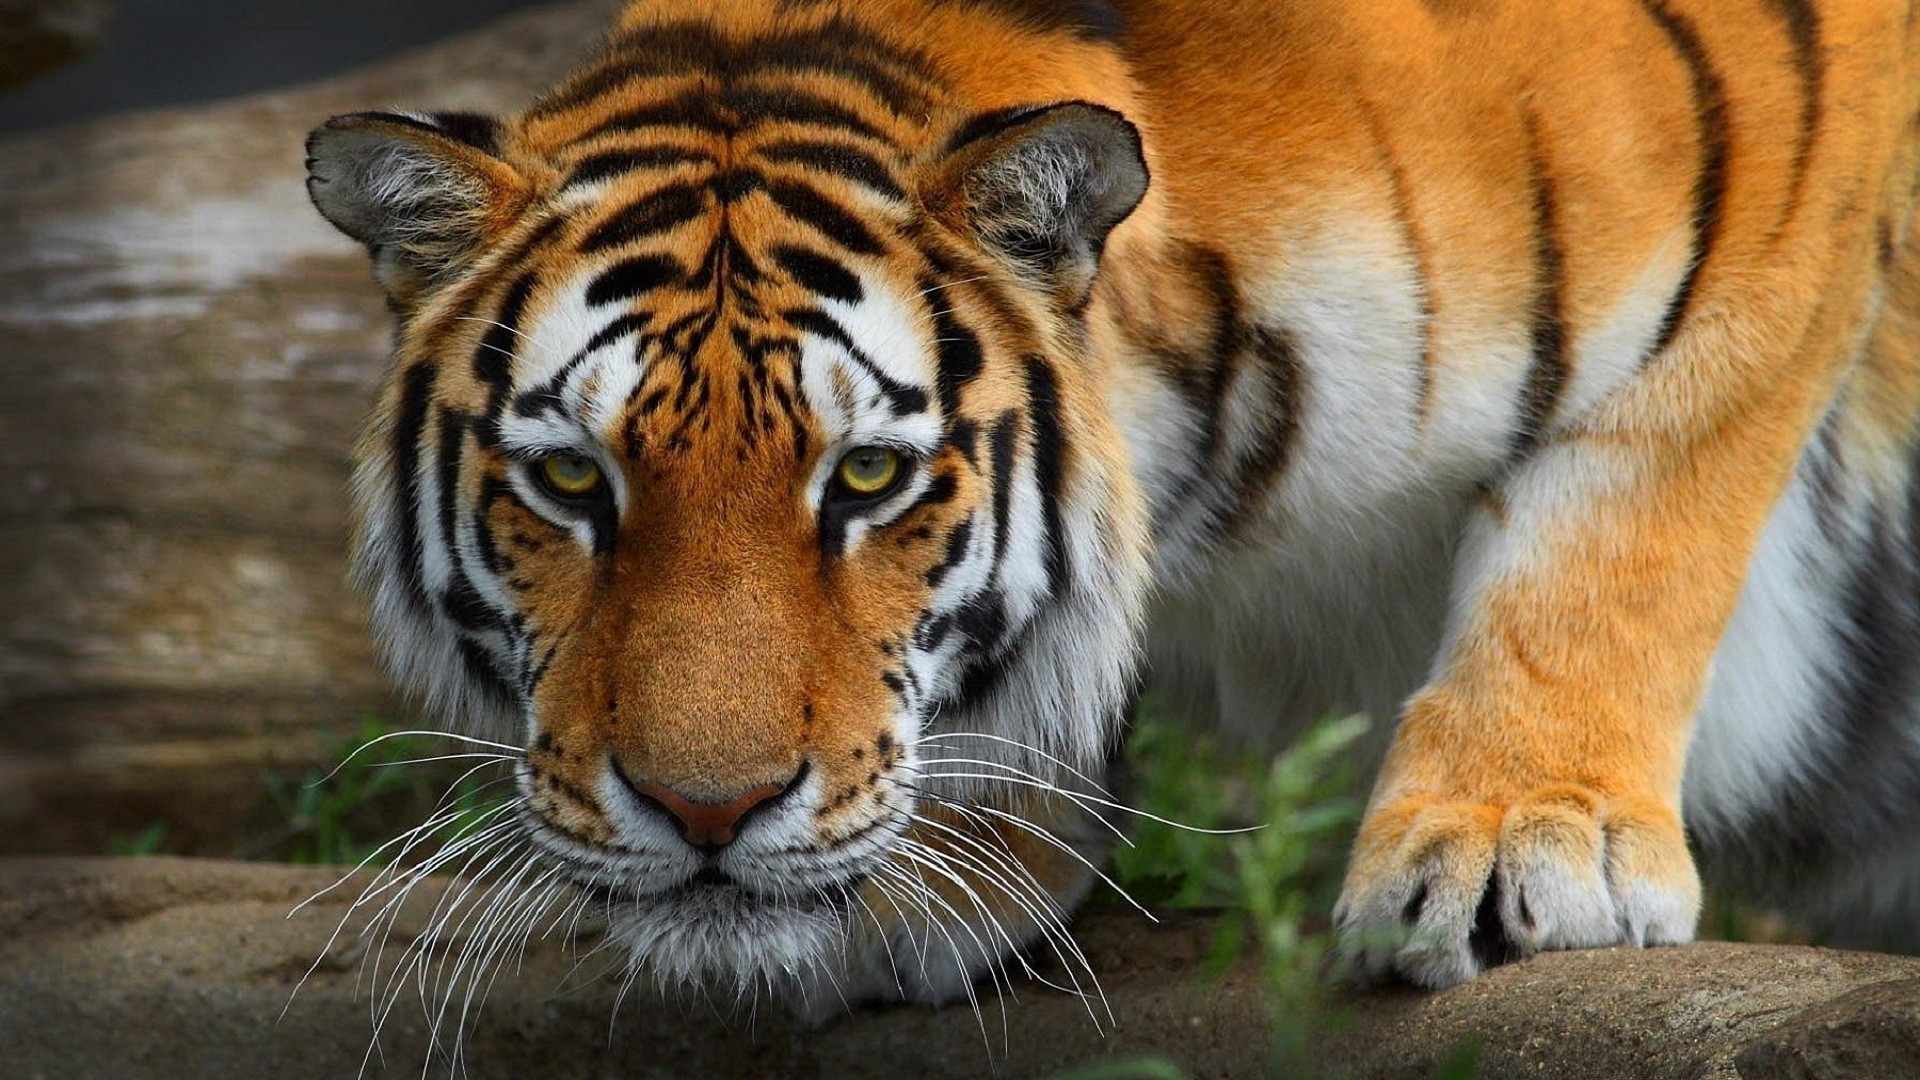 1920x1080 tiger wallpaper full hd (65+ images)